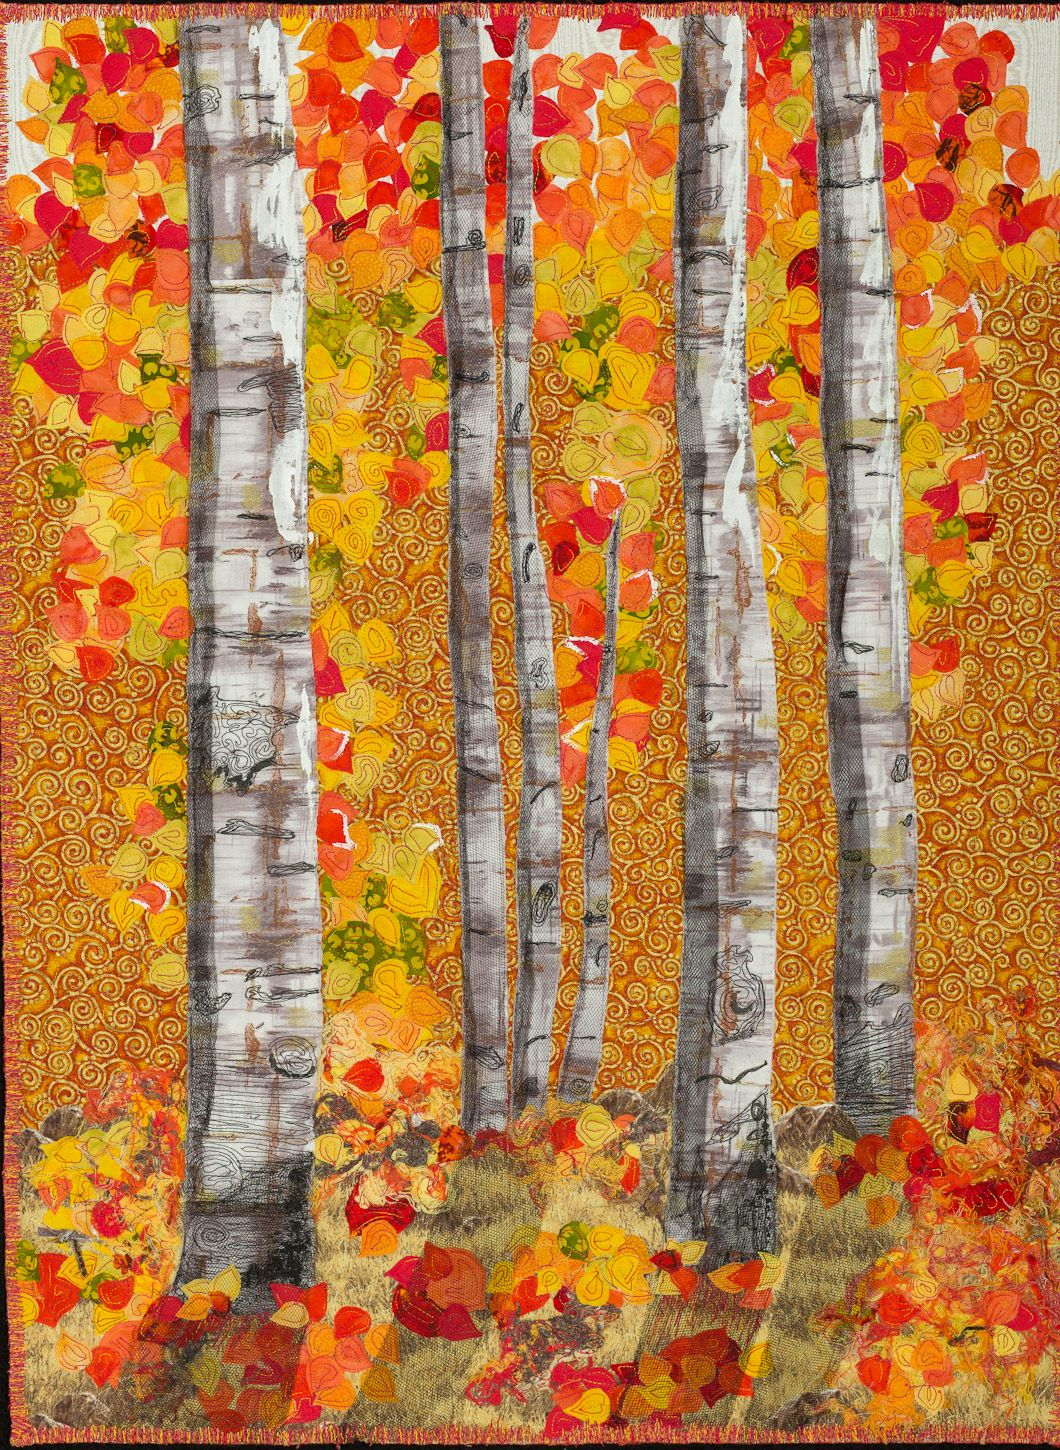 Aspen Trees In Autumn Splendor By Cindy Williams 2013